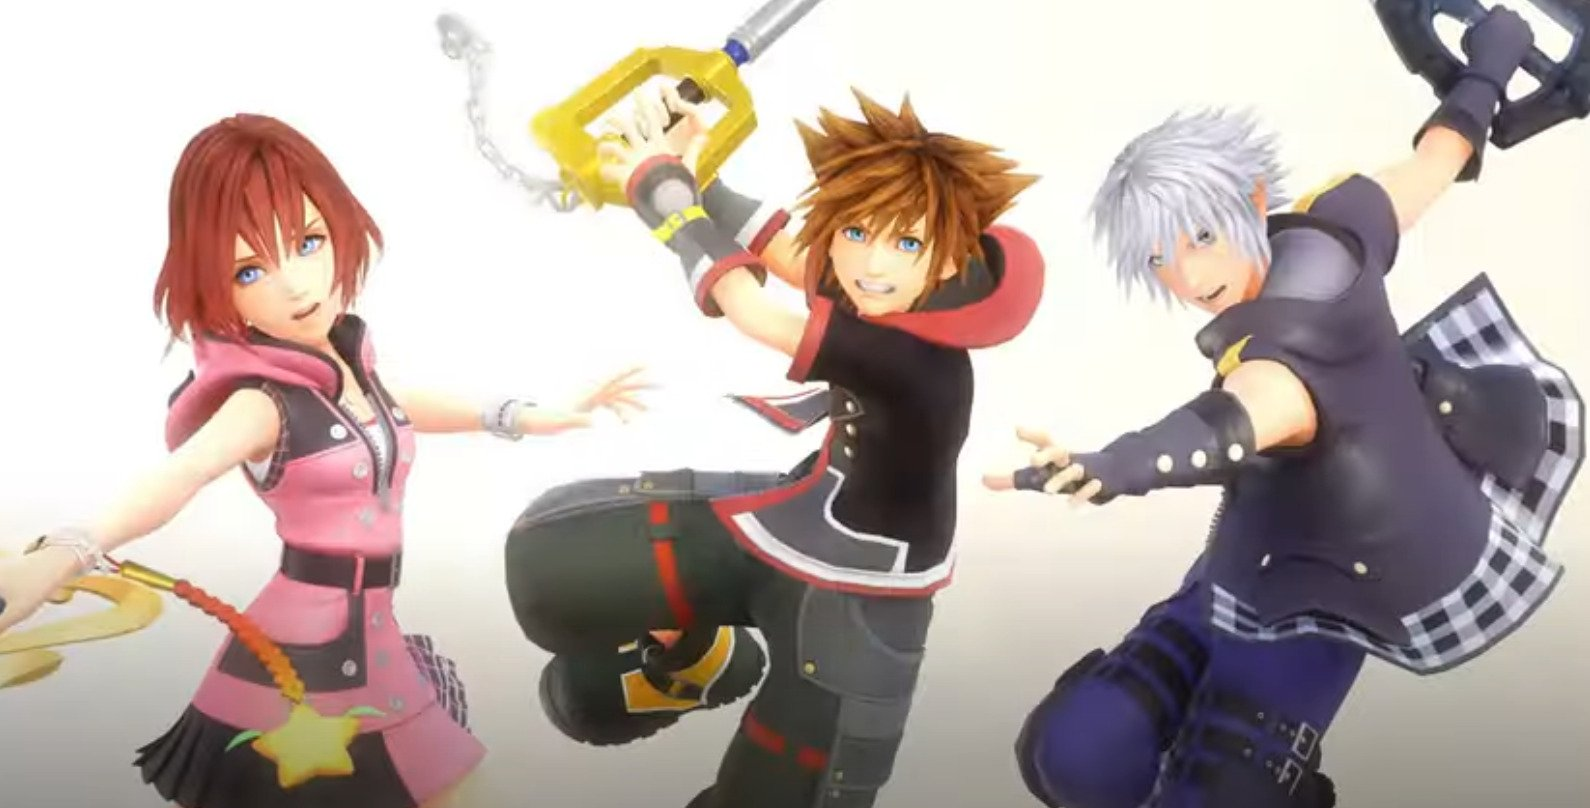 Kingdom Hearts Characters Are Coming To Final Fantasy Brave Exvius For Special Event